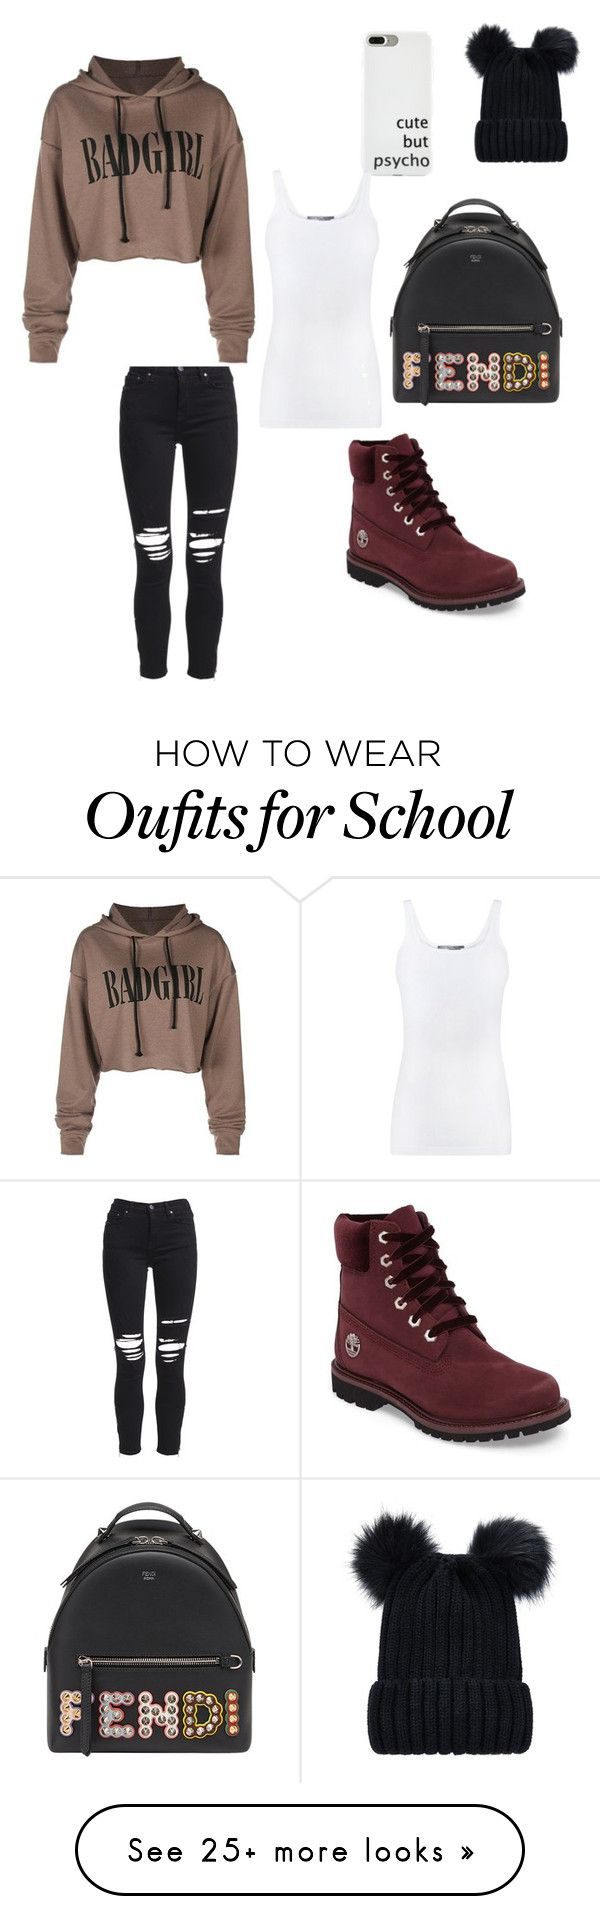 """""""School daze"""" by charlize-tillman on Polyvore featuring AMIRI, Fendi, Timberland and Vince"""